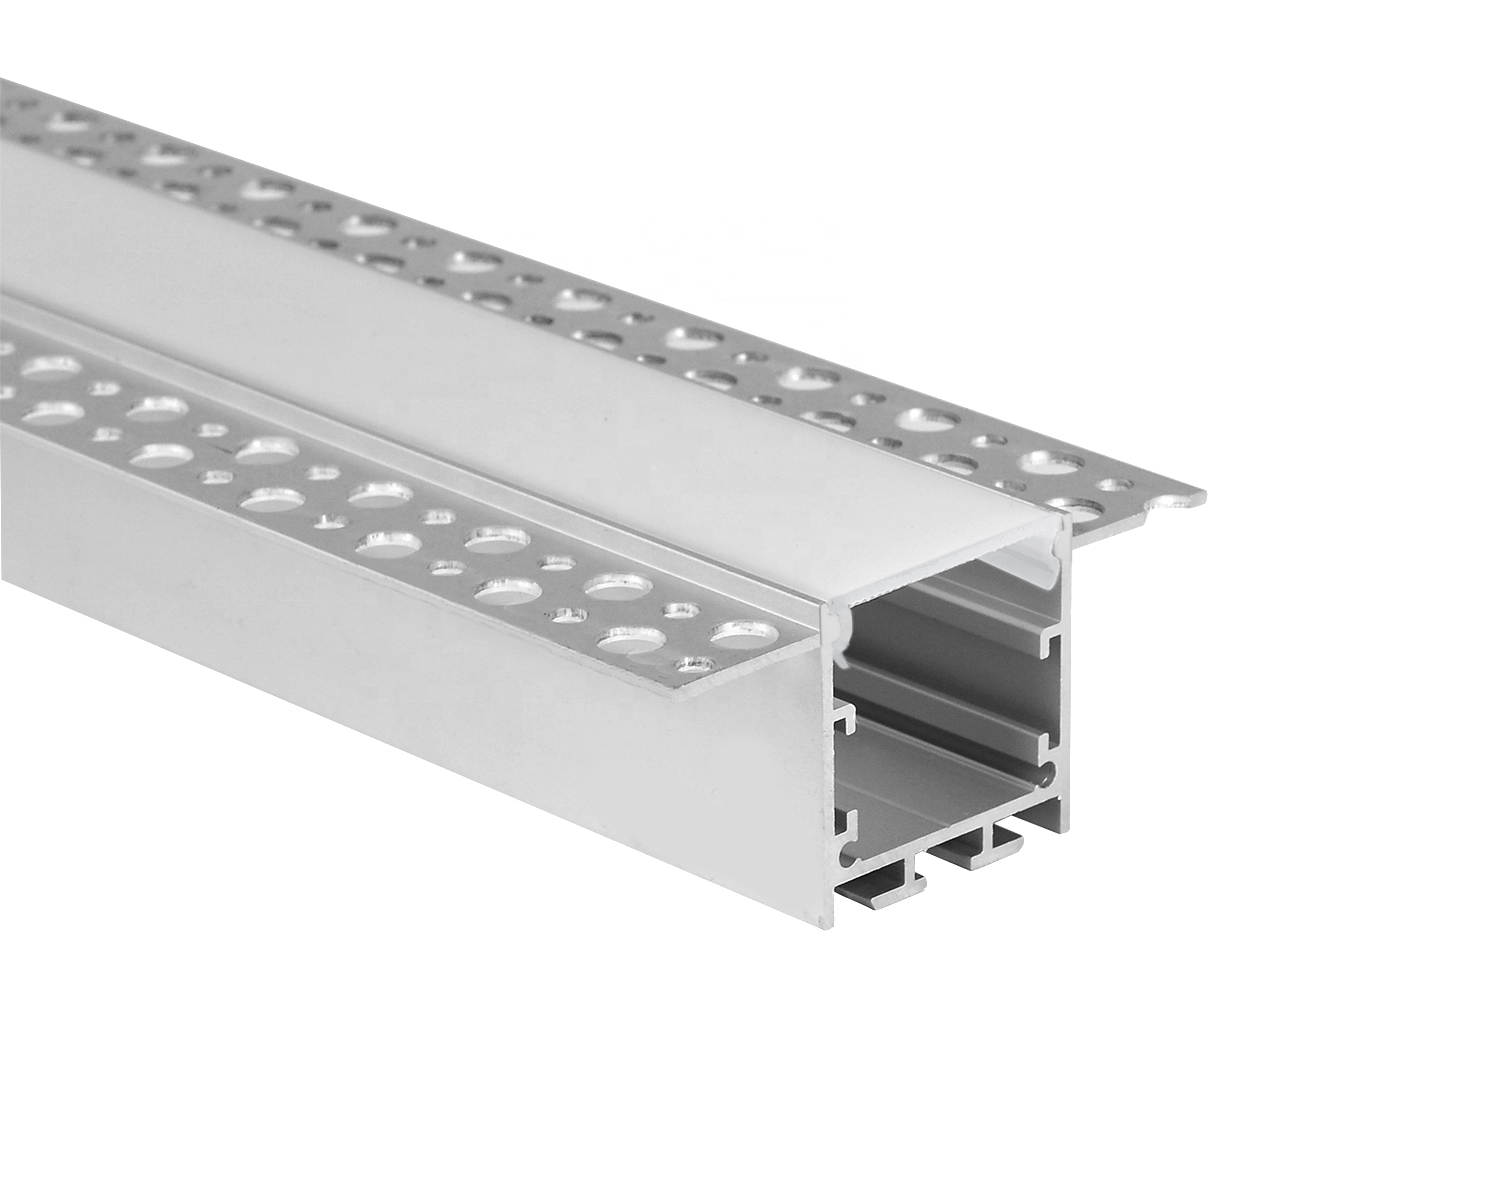 led aluminum profile recessed mount with PVC diffuser to make led linear fixture